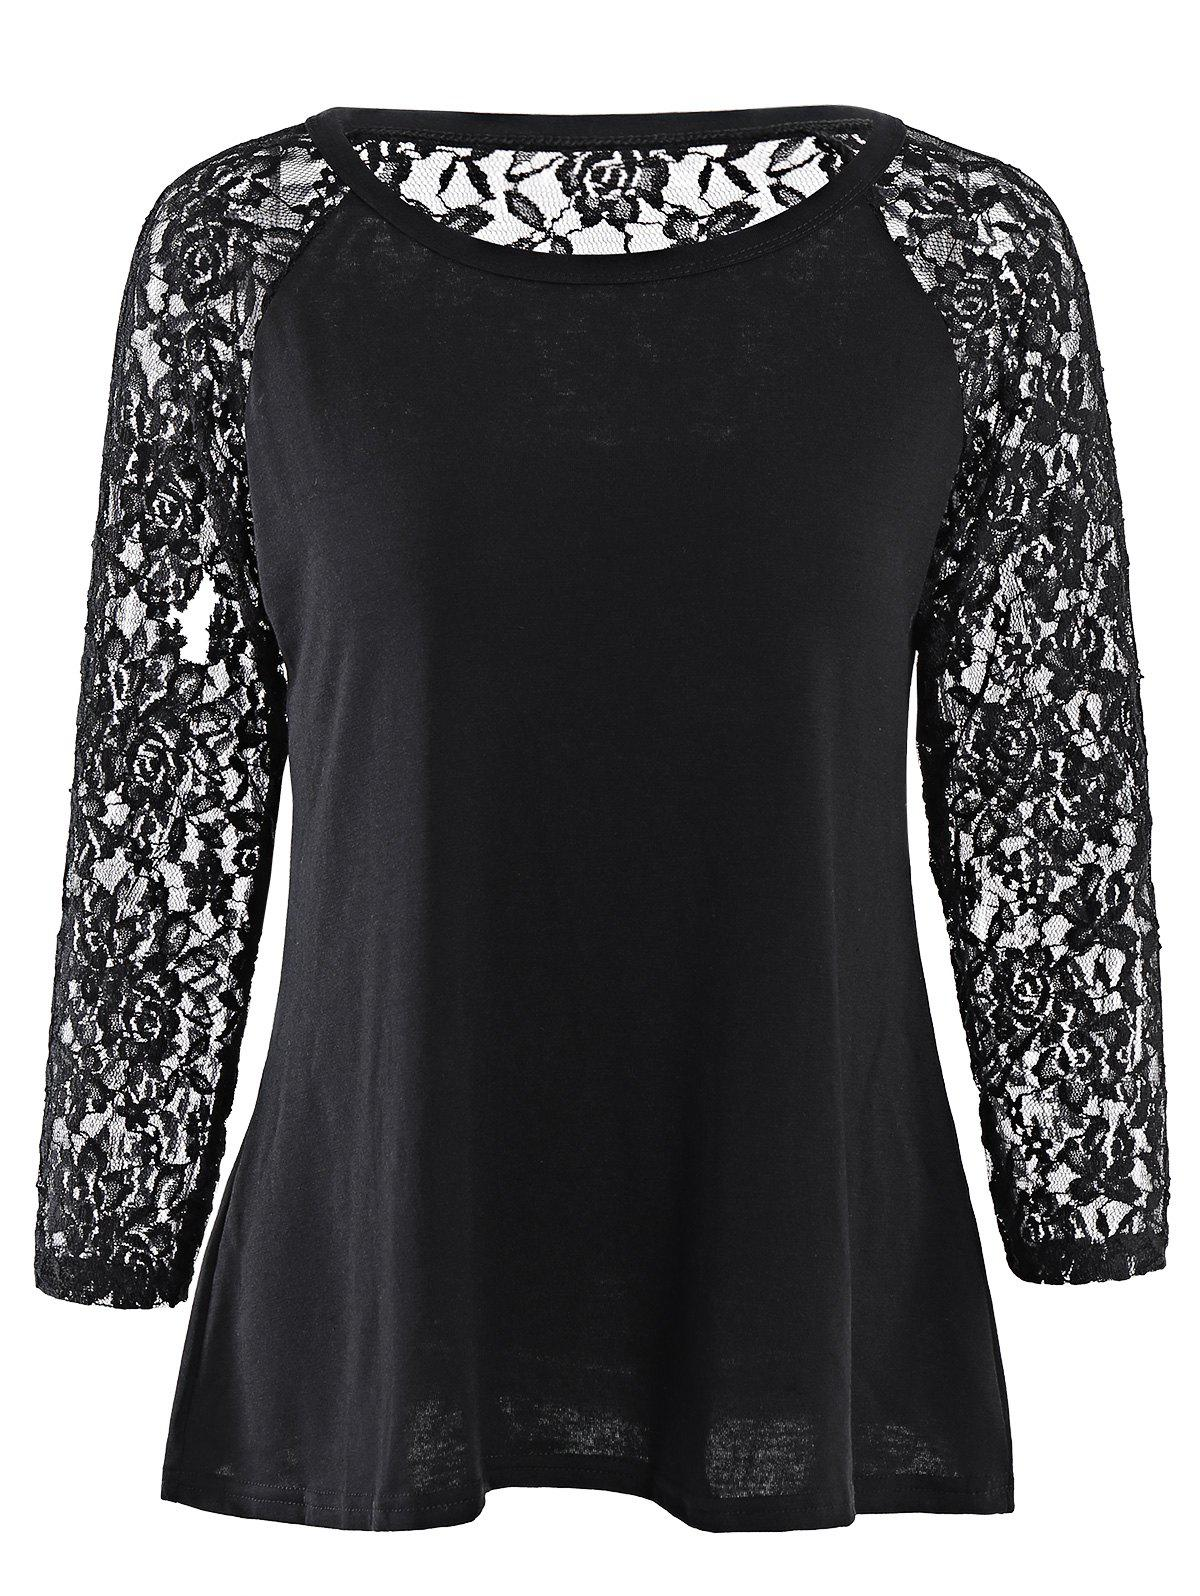 Fresh Style Solid Color Hollow Out Lace Spliced Long Sleeve T-Shirt For Women - BLACK S